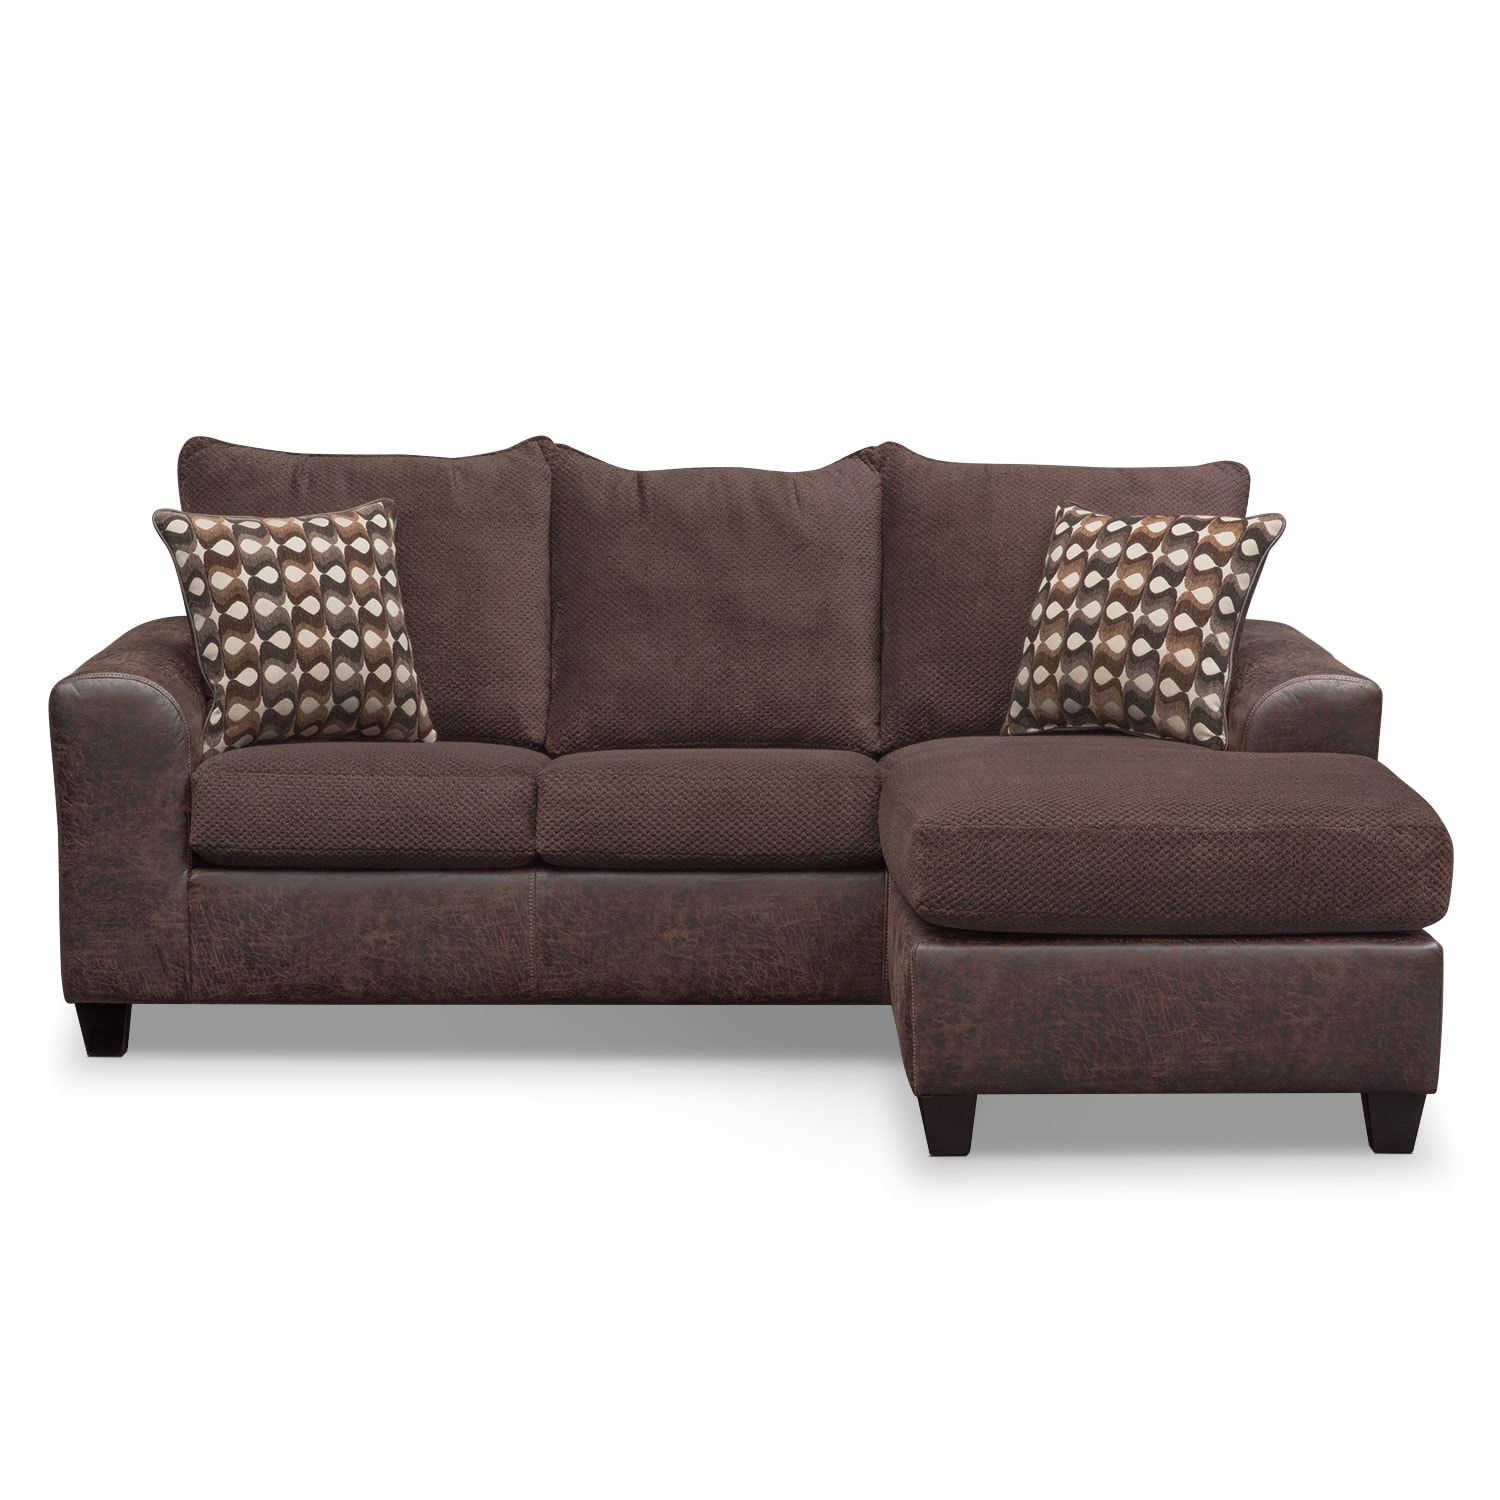 Brando sofa with chaise chocolate american signature for American signature furniture commercial chaise